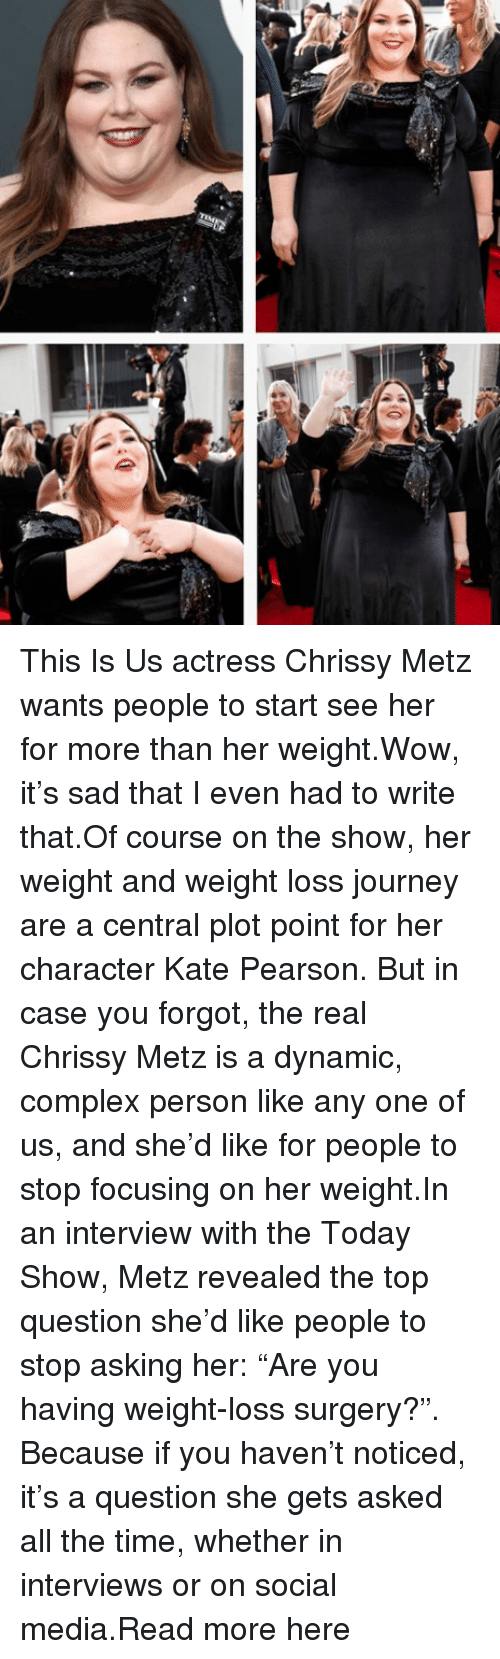 "Complex, Journey, and Social Media: This Is Us actress Chrissy Metz wants people to start see her for more than her weight.Wow, it's sad that I even had to write that.Of course on the show, her weight and weight loss journey are a central plot point for her character Kate Pearson. But in case you forgot, the real Chrissy Metz is a dynamic, complex person like any one of us, and she'd like for people to stop focusing on her weight.In an interview with the Today Show, Metz revealed the top question she'd like people to stop asking her: ""Are you having weight-loss surgery?"". Because if you haven't noticed, it's a question she gets asked all the time, whether in interviews or on social media.Read more here"